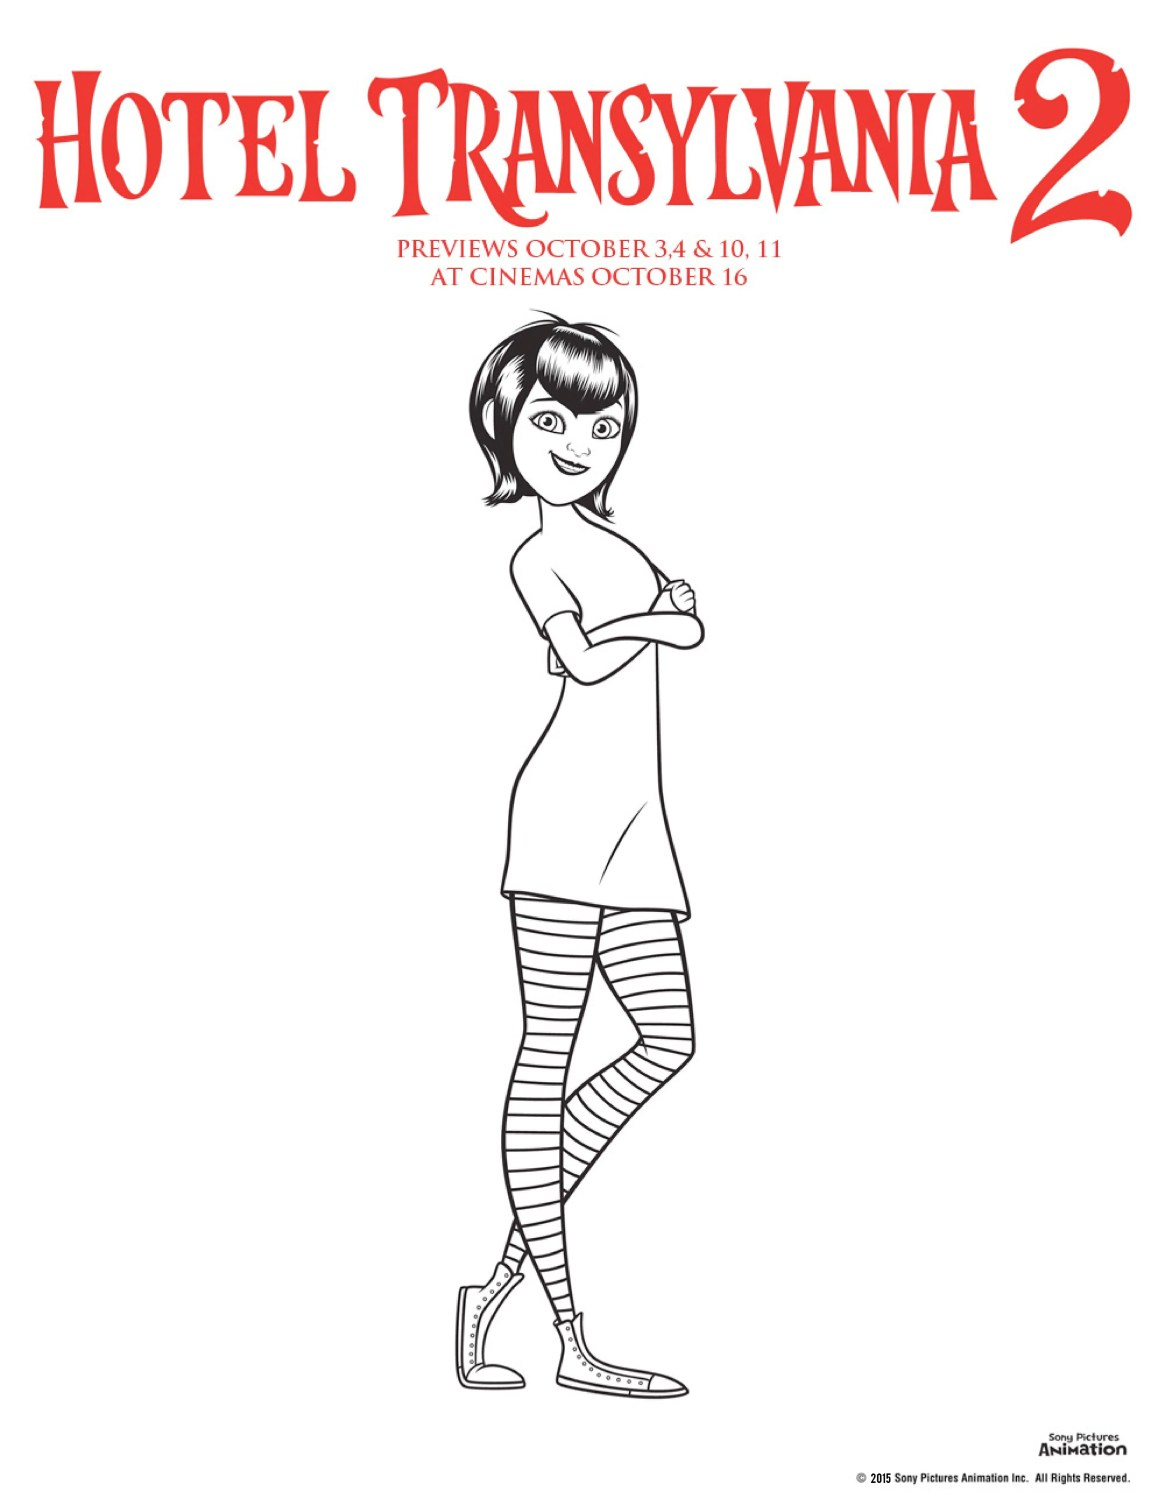 Hotel transylvania 2 colouring pages mavis colouring sheet, perfect for Halloween